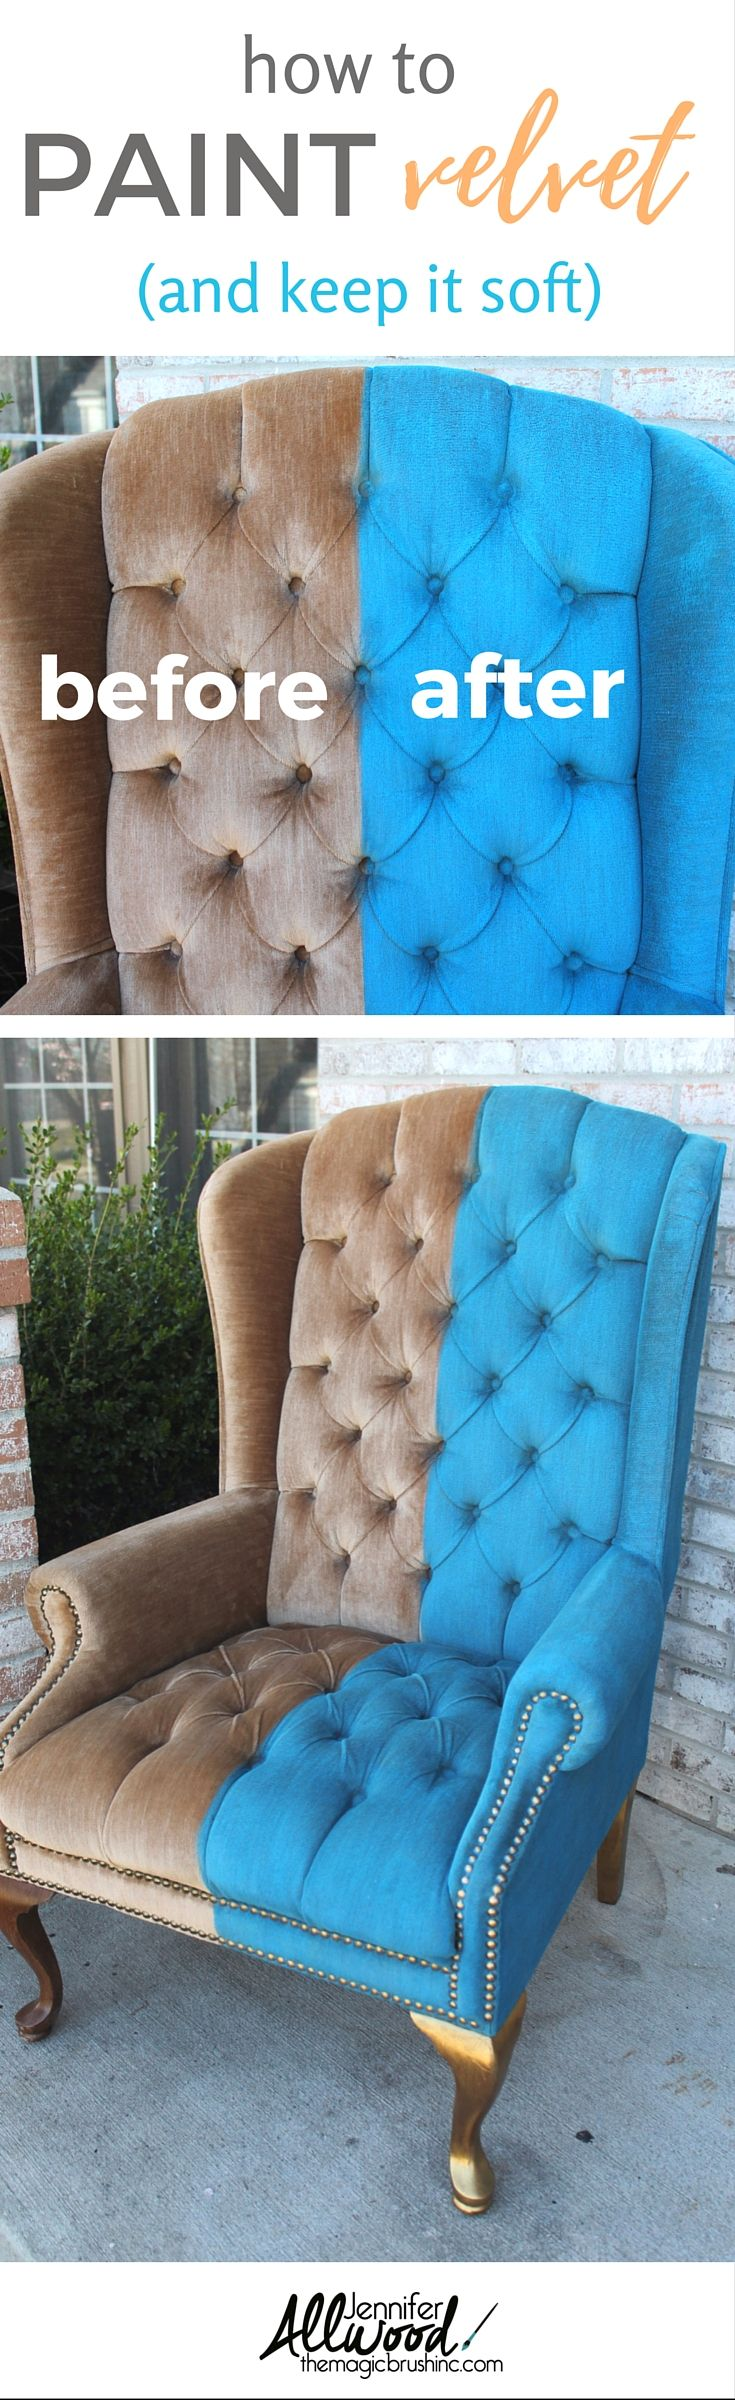 Paint Velvet Fabric - A Chair Makeover | Paint fabric, Crushed ...